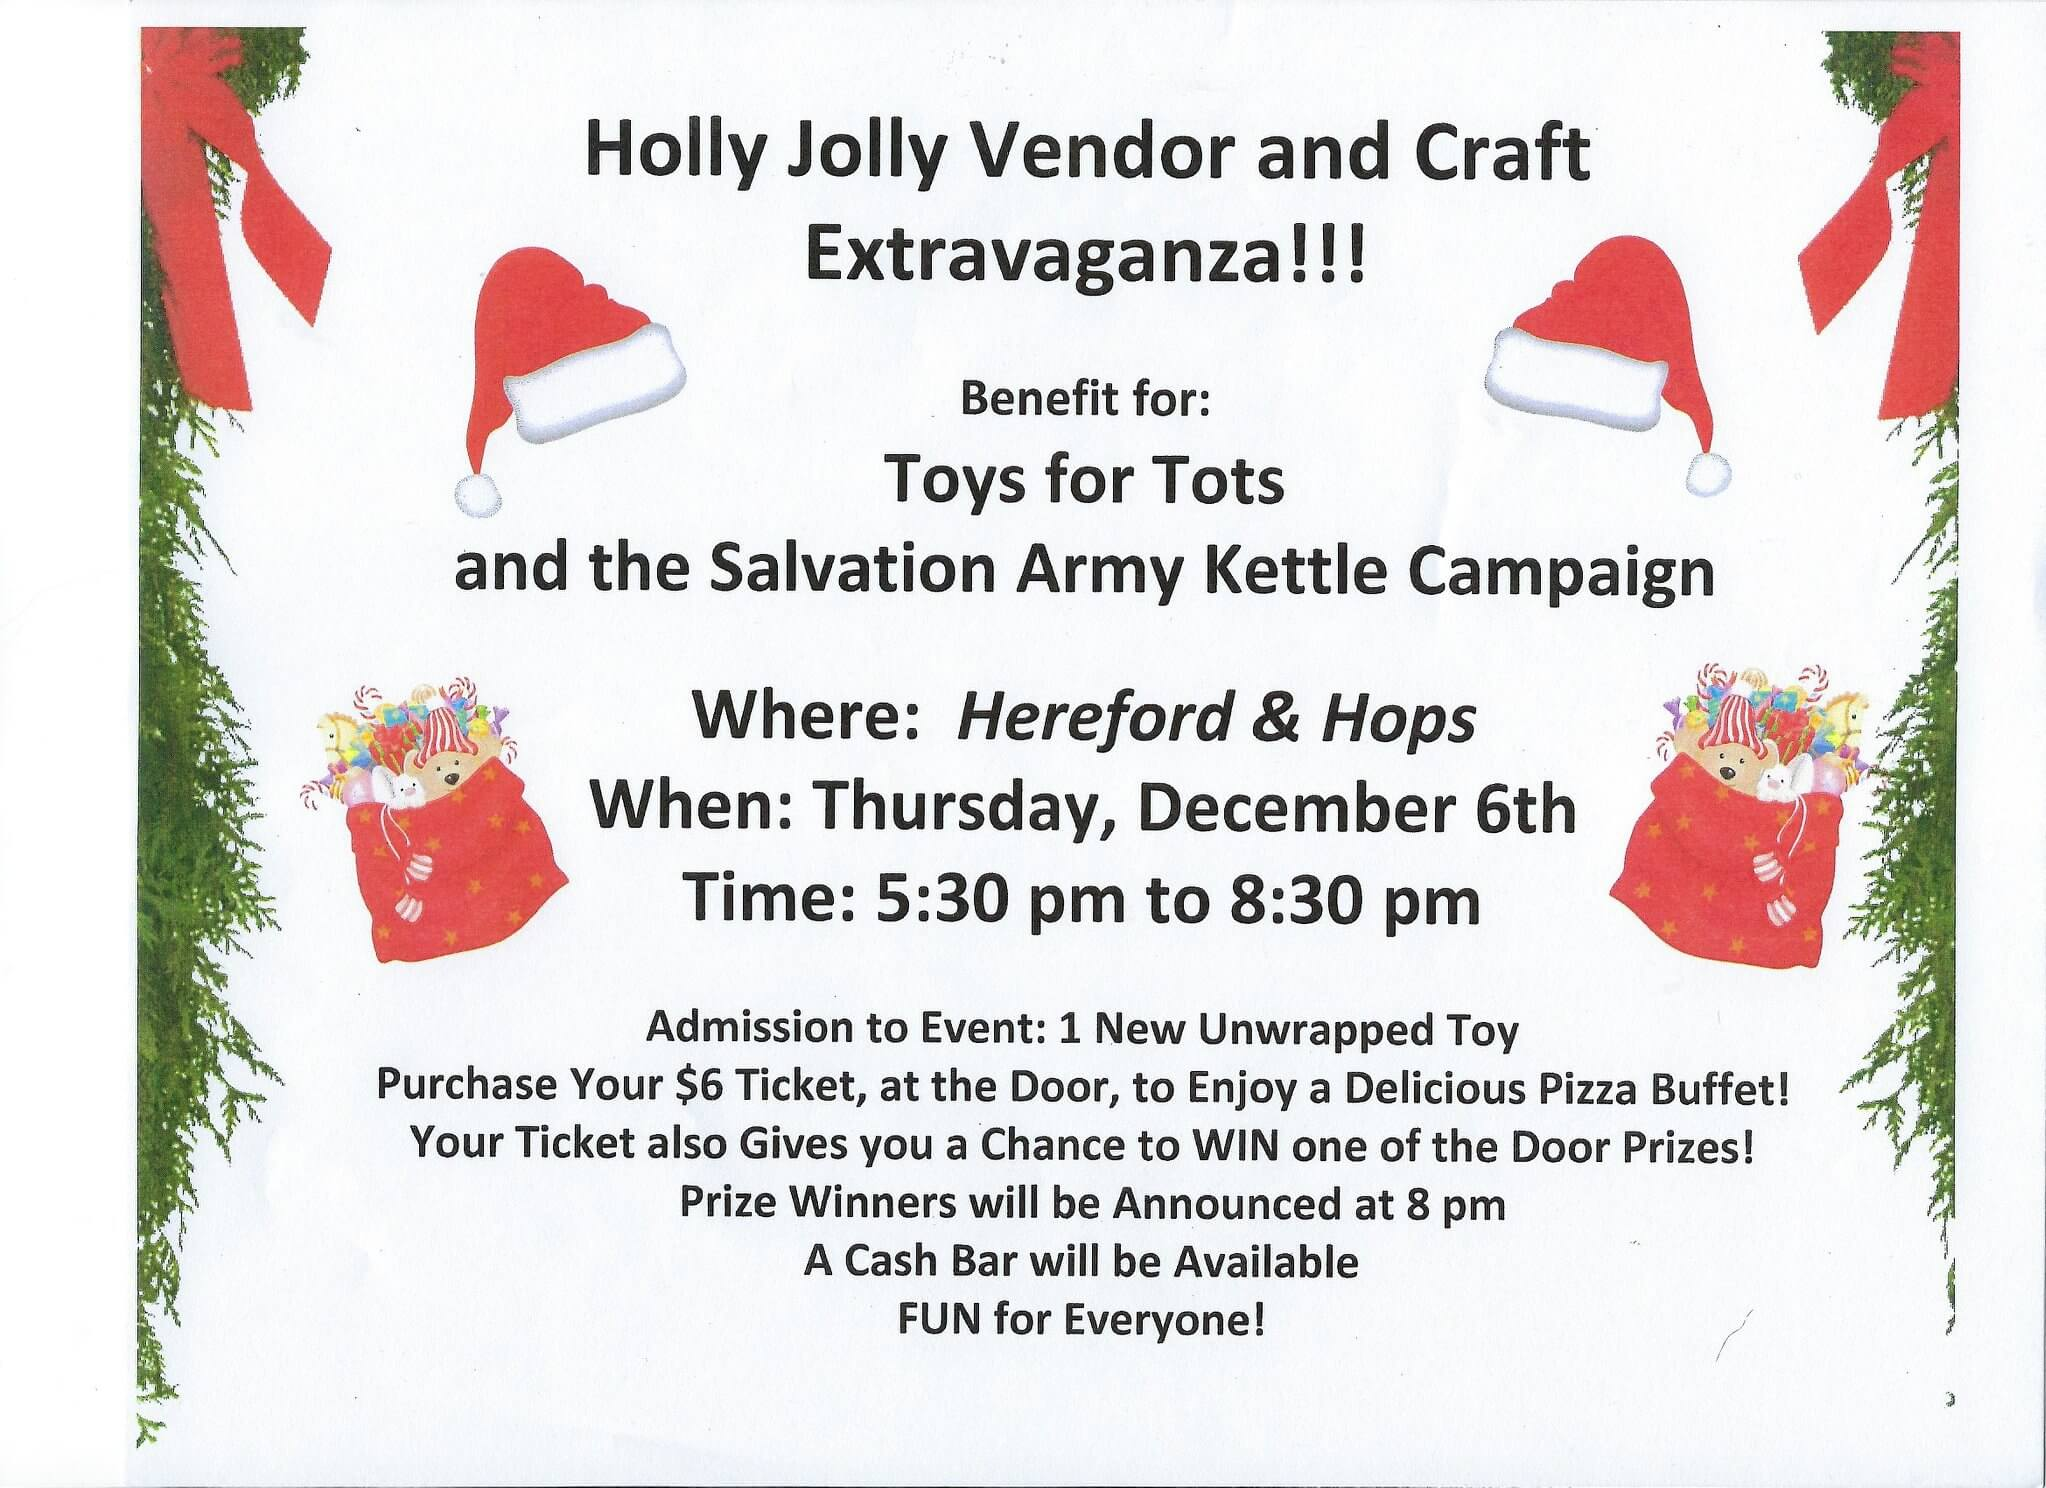 Holly Jolly Vendor and Craft Extravaganza on Thursday, December 6th, at Hereford & Hops in Escanaba - Any Time between 5:30 pm and 8:30 pm. This Event will Benefit 2 Local Non-Profit Charities - Toys for Tots and The Salvation Army Kettle Campaign. Admittance to this Event is a New Unwrapped Toy. There will be 10 Vendors/Crafters, located in the Back Dining Room Area, to Assist You with Your Holiday Shopping! The 10 Vendors/Crafters include: AVON, Lisa Ann Boutique, Tupperware, Pampered Chef, Lilla Rose, Scentsy, Leigh's Garden Winery, Moments in Time by Mickey, Blue Grace Boutique, and doTERRA Essential Oils! Plus Purchase Your $6 Ticket, at the Door, to Enjoy a Delicious Pizza Buffet! Your Ticket also Gives You a Chance to WIN one of the Door Prizes! Prize Winners will be Announced at 8 pm. Everyone is Welcome to Attend! FUN for All!